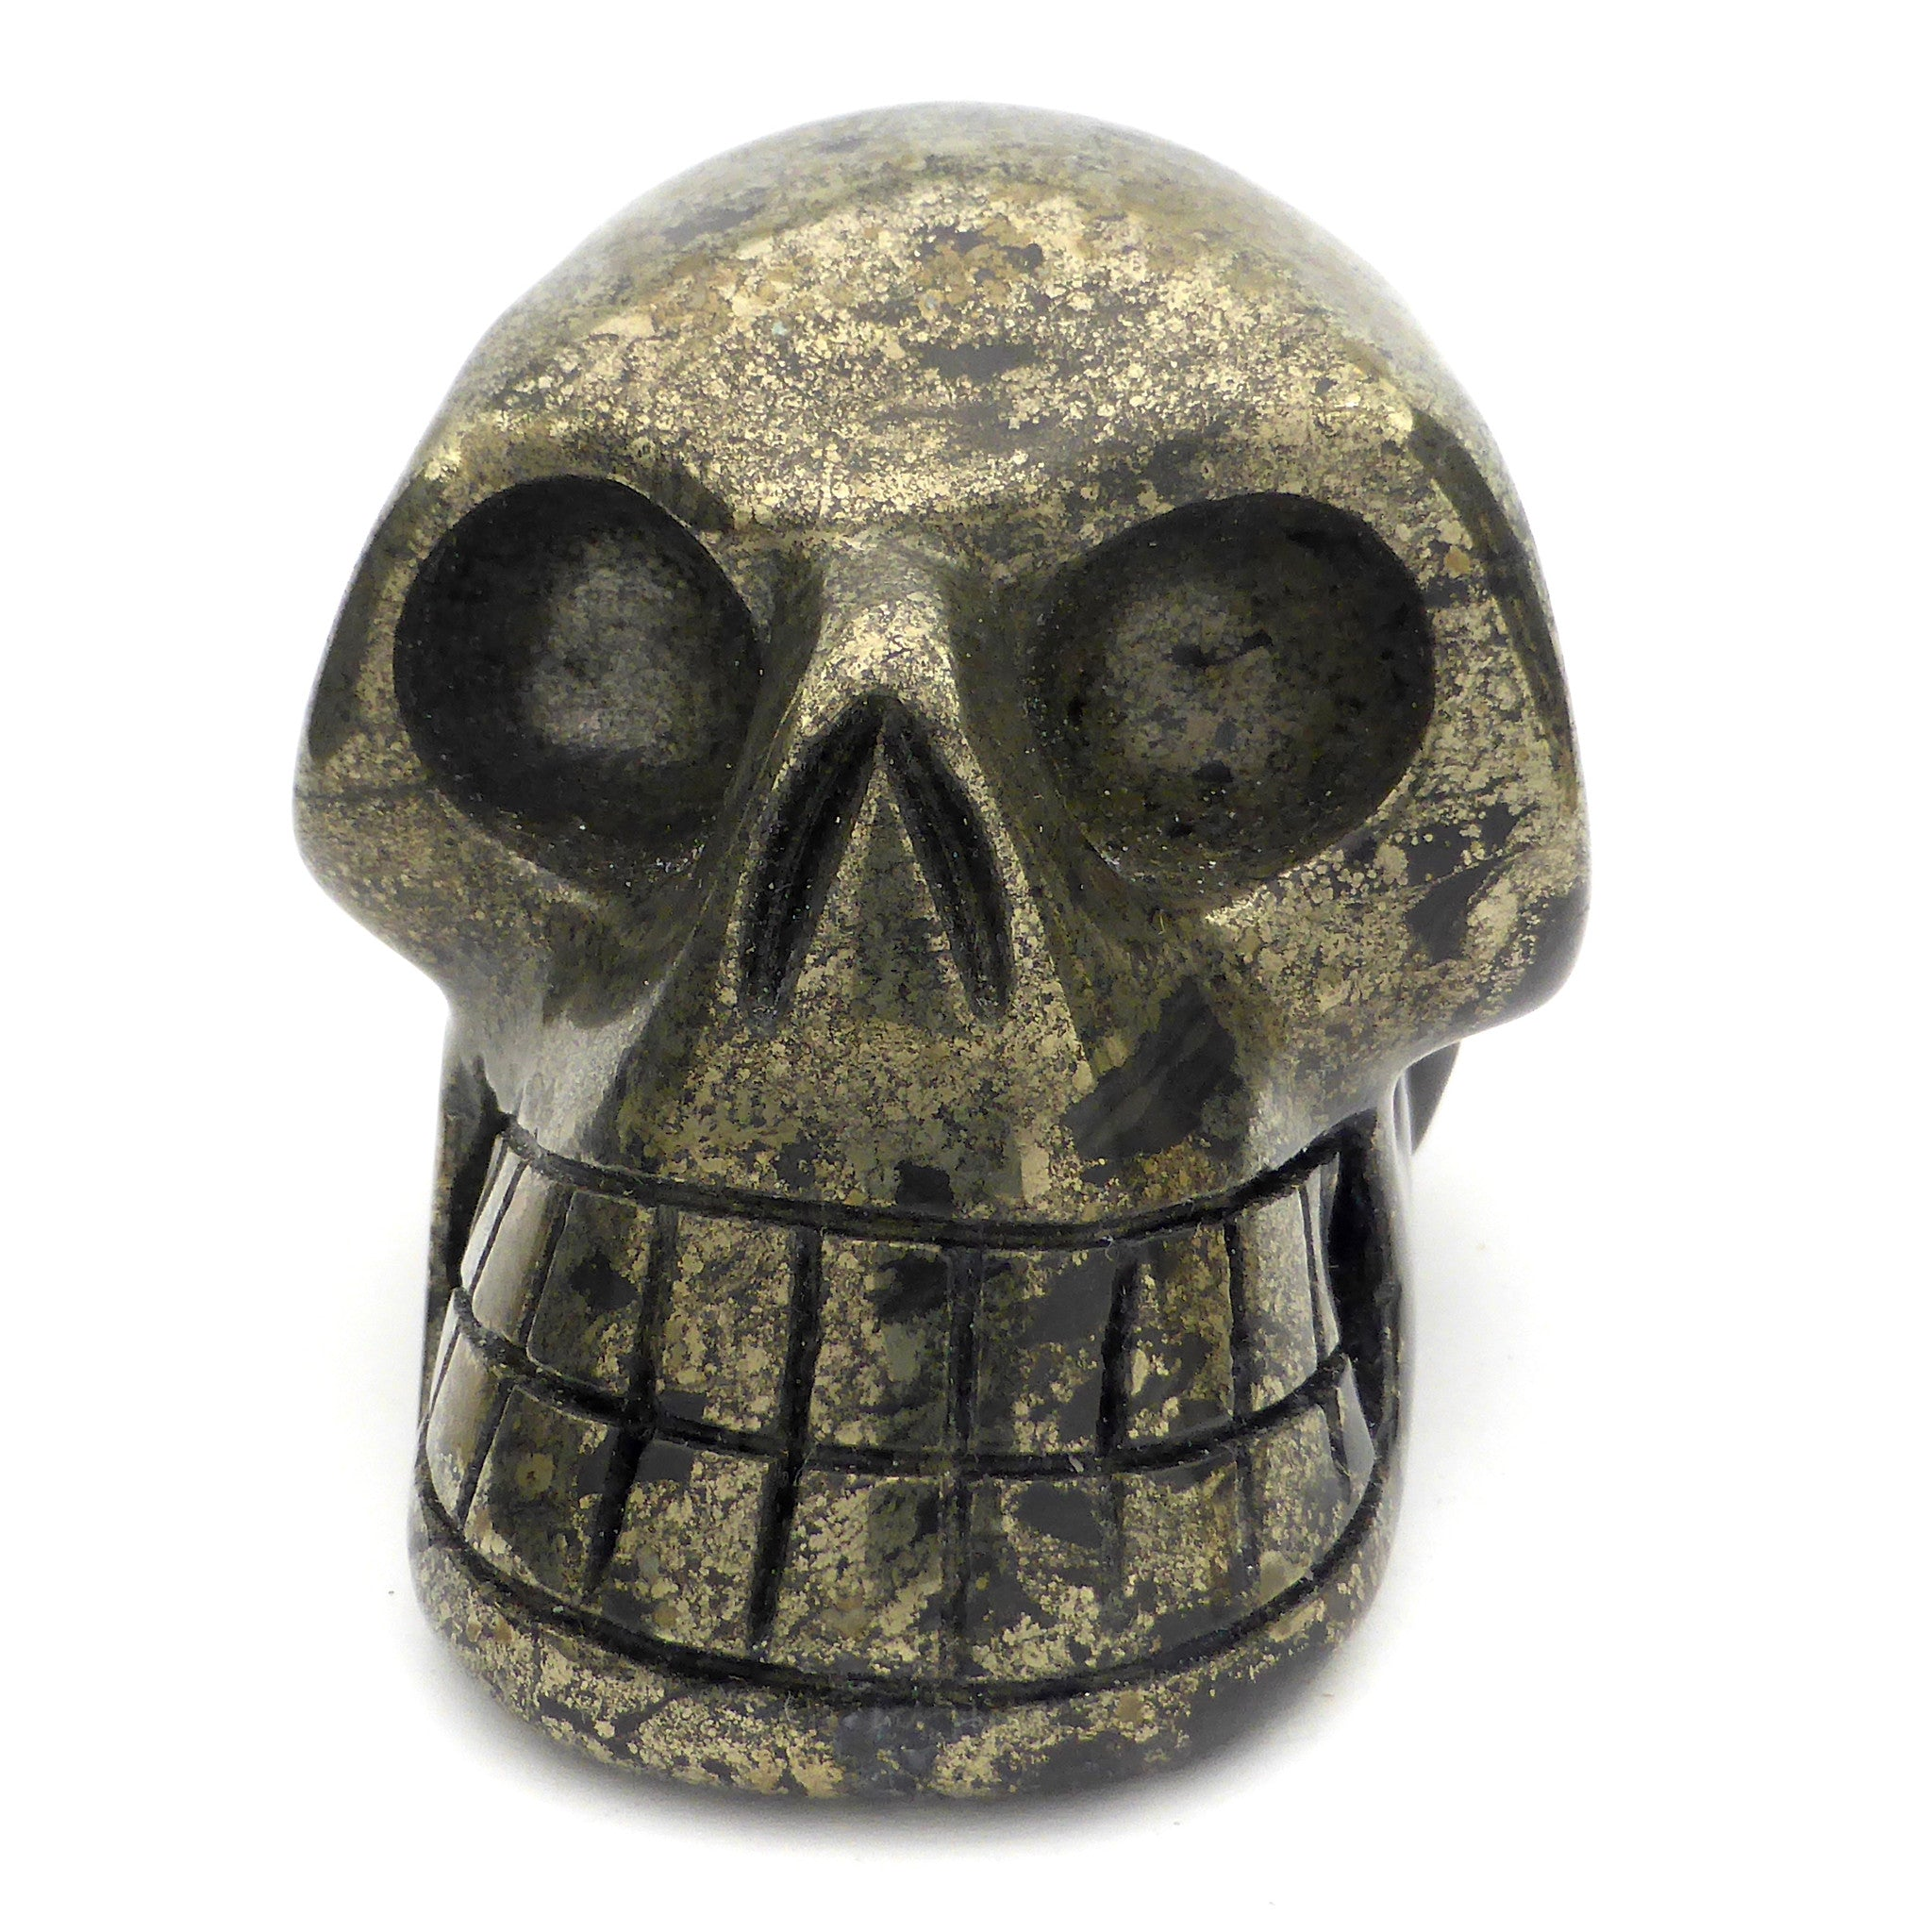 Skull Hand Carved from Healers Gold | Pyrites | Magnetite | Crystal Heart Melbourne Australia since 1986